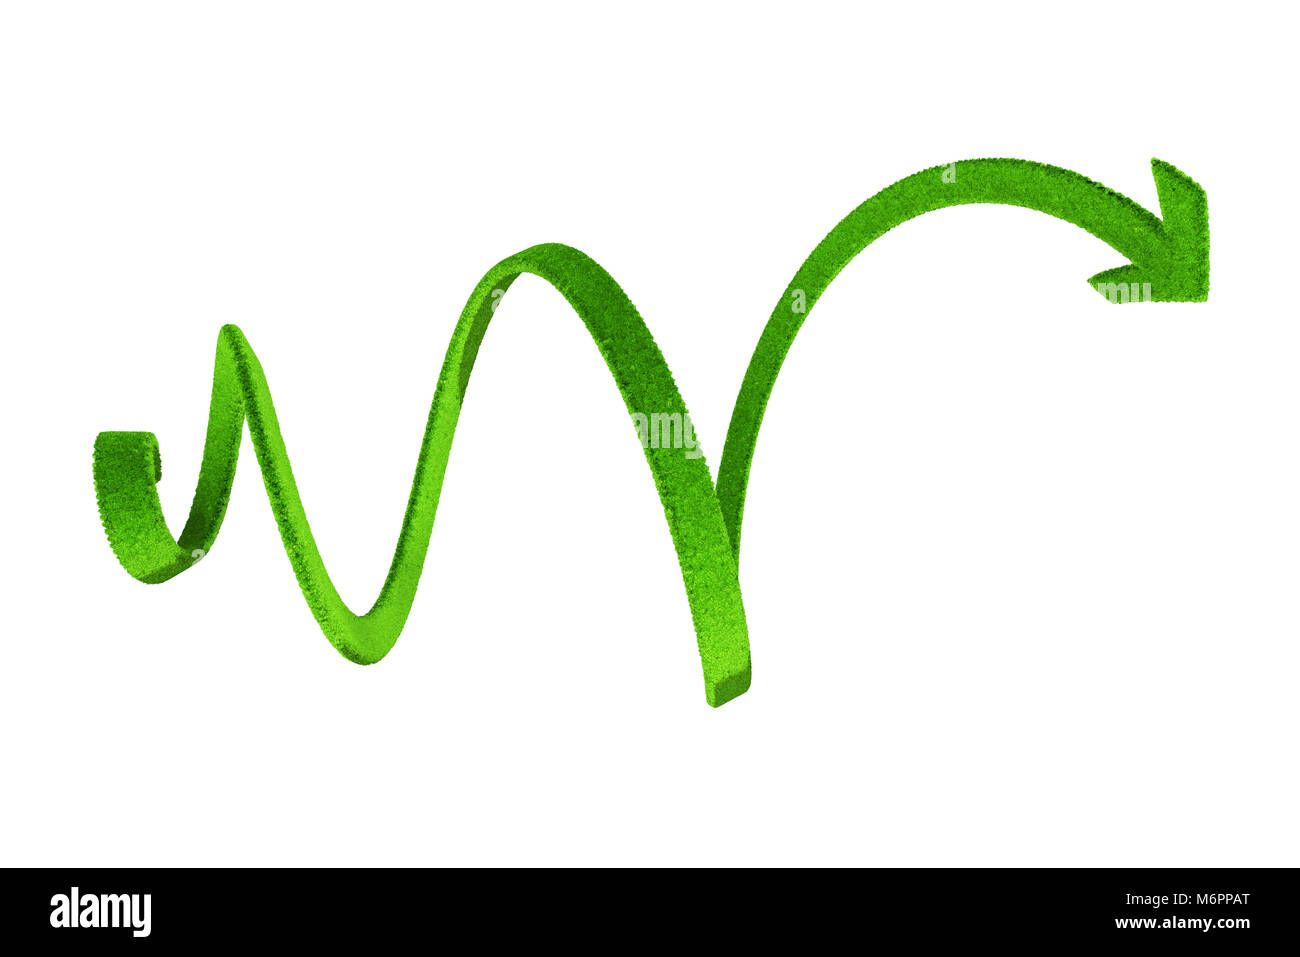 Green spiral arrow - Stock Image